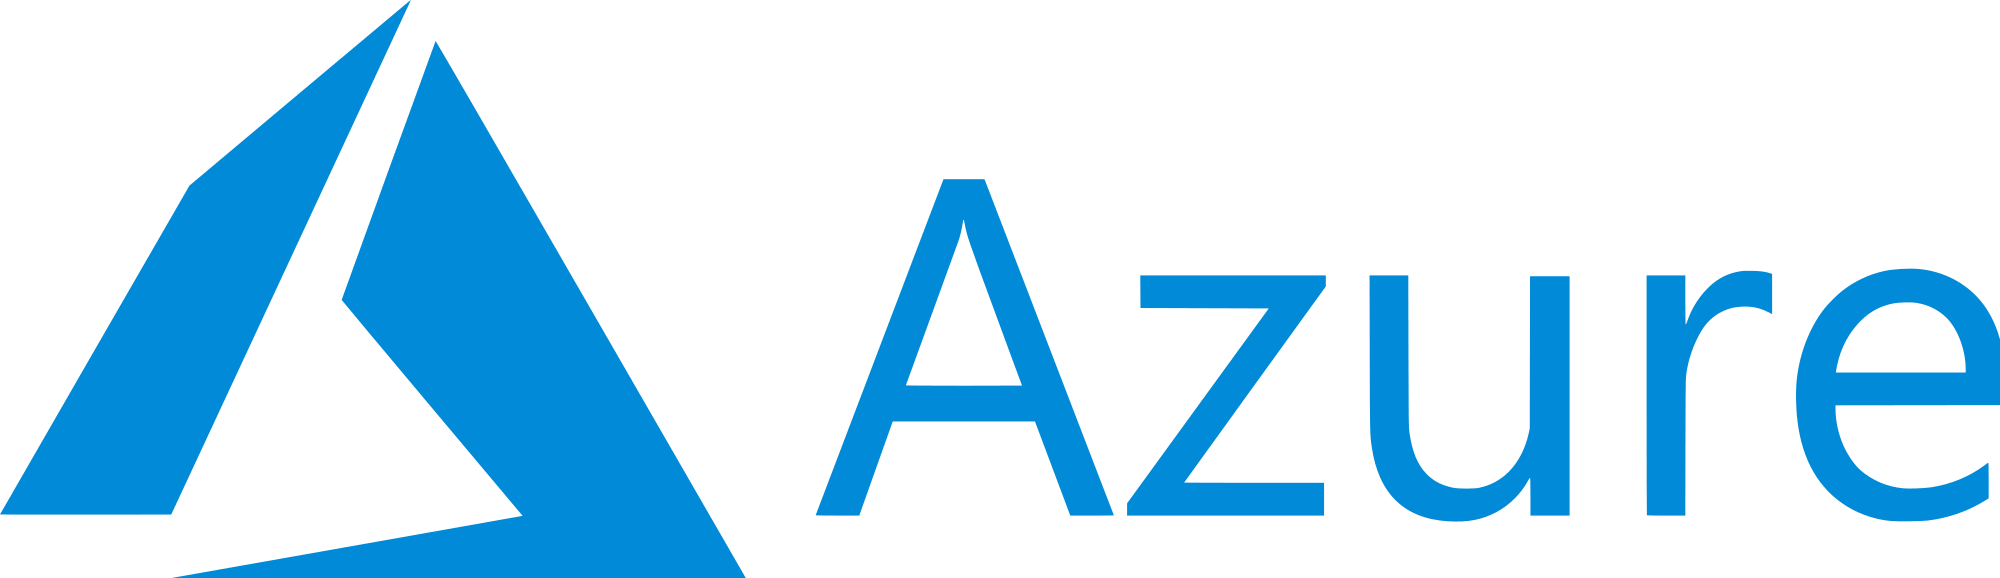 Awesome azure-consultants Experts Available For Project Work Right Now.